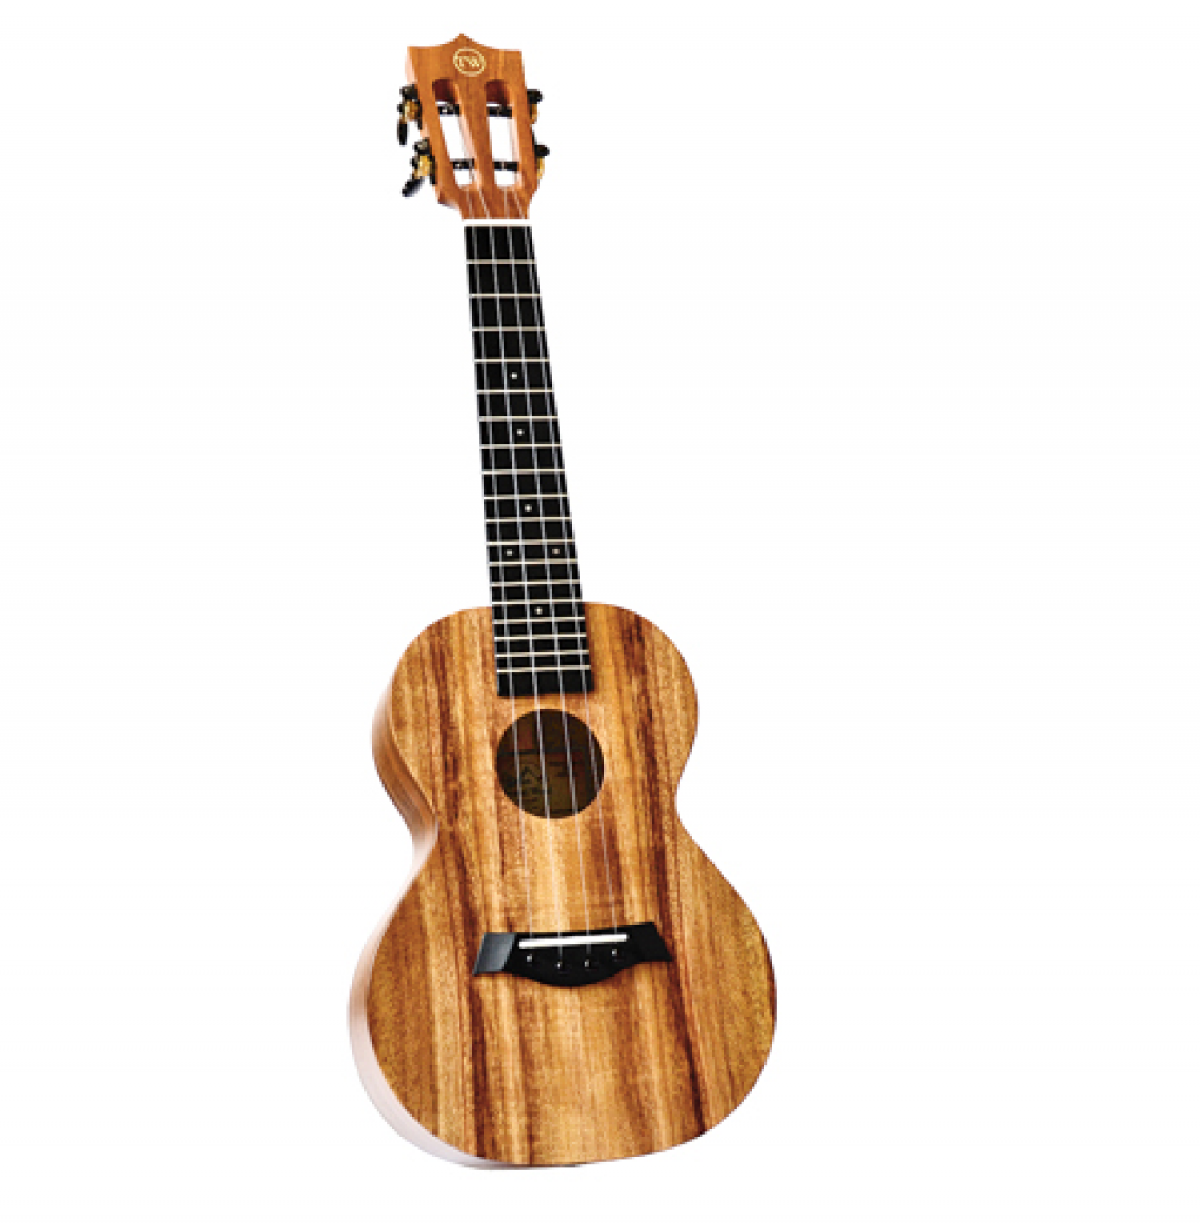 Twisted Wood Koa Ukulele - KO1000